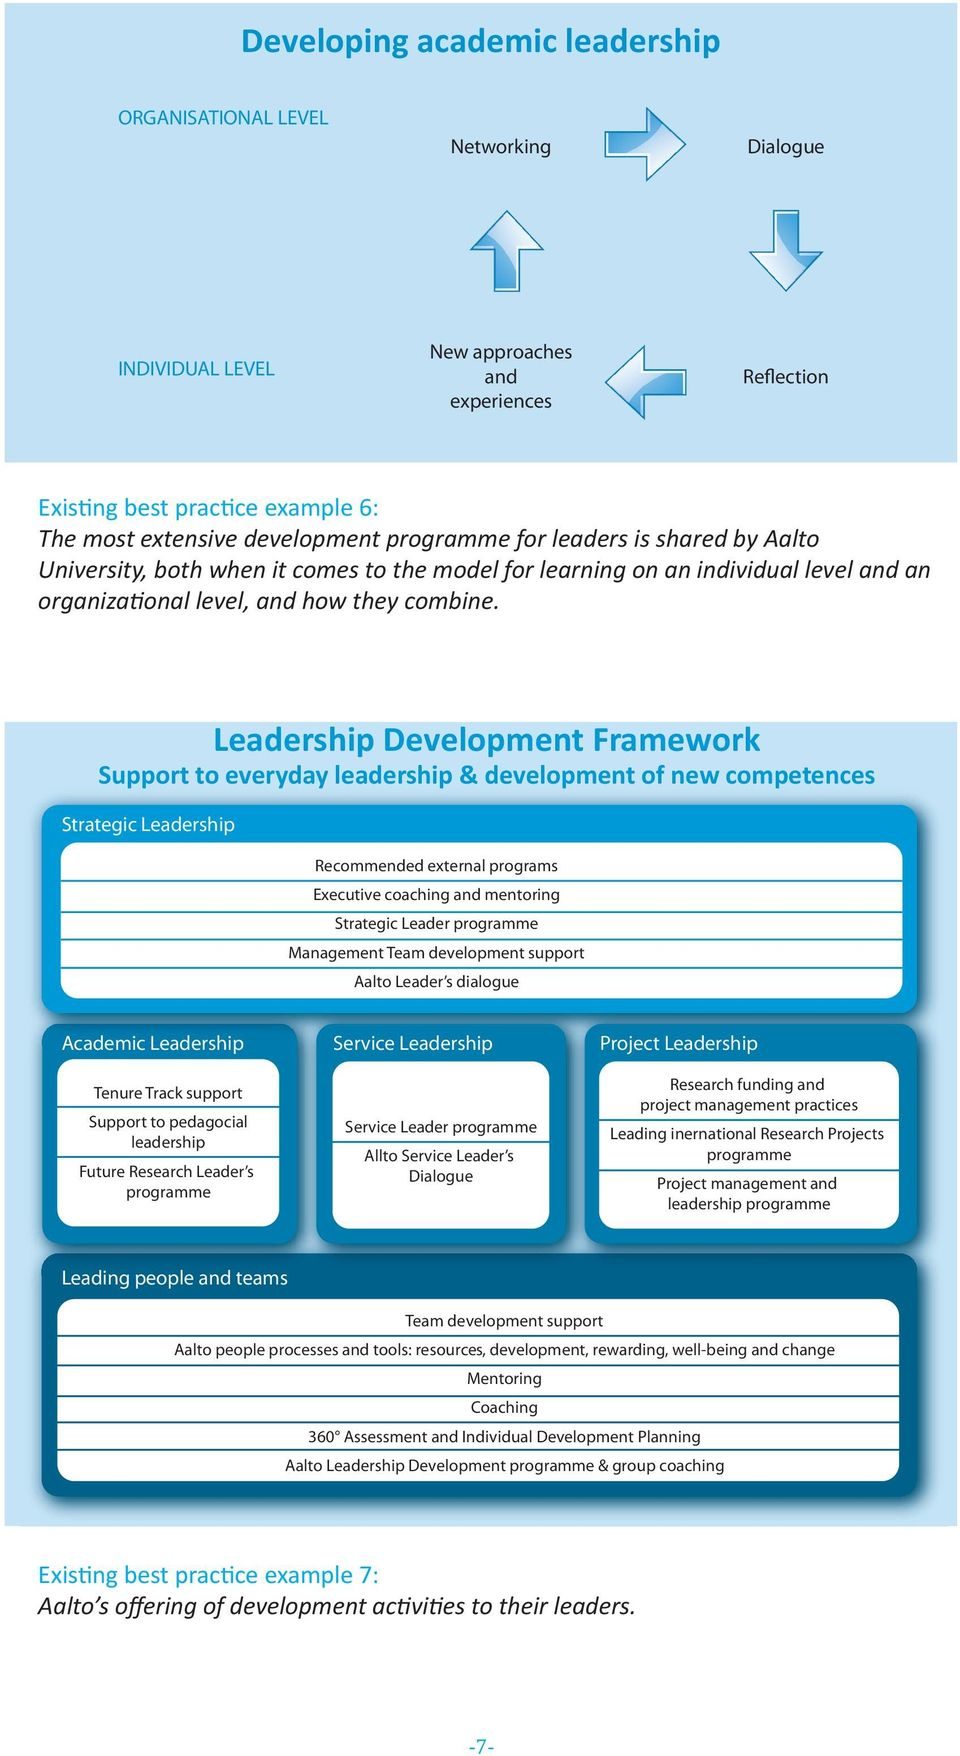 Leadership Development Framework Support to everyday leadership & development of new competences Strategic Leadership Recommended external programs Executive coaching and mentoring Strategic Leader